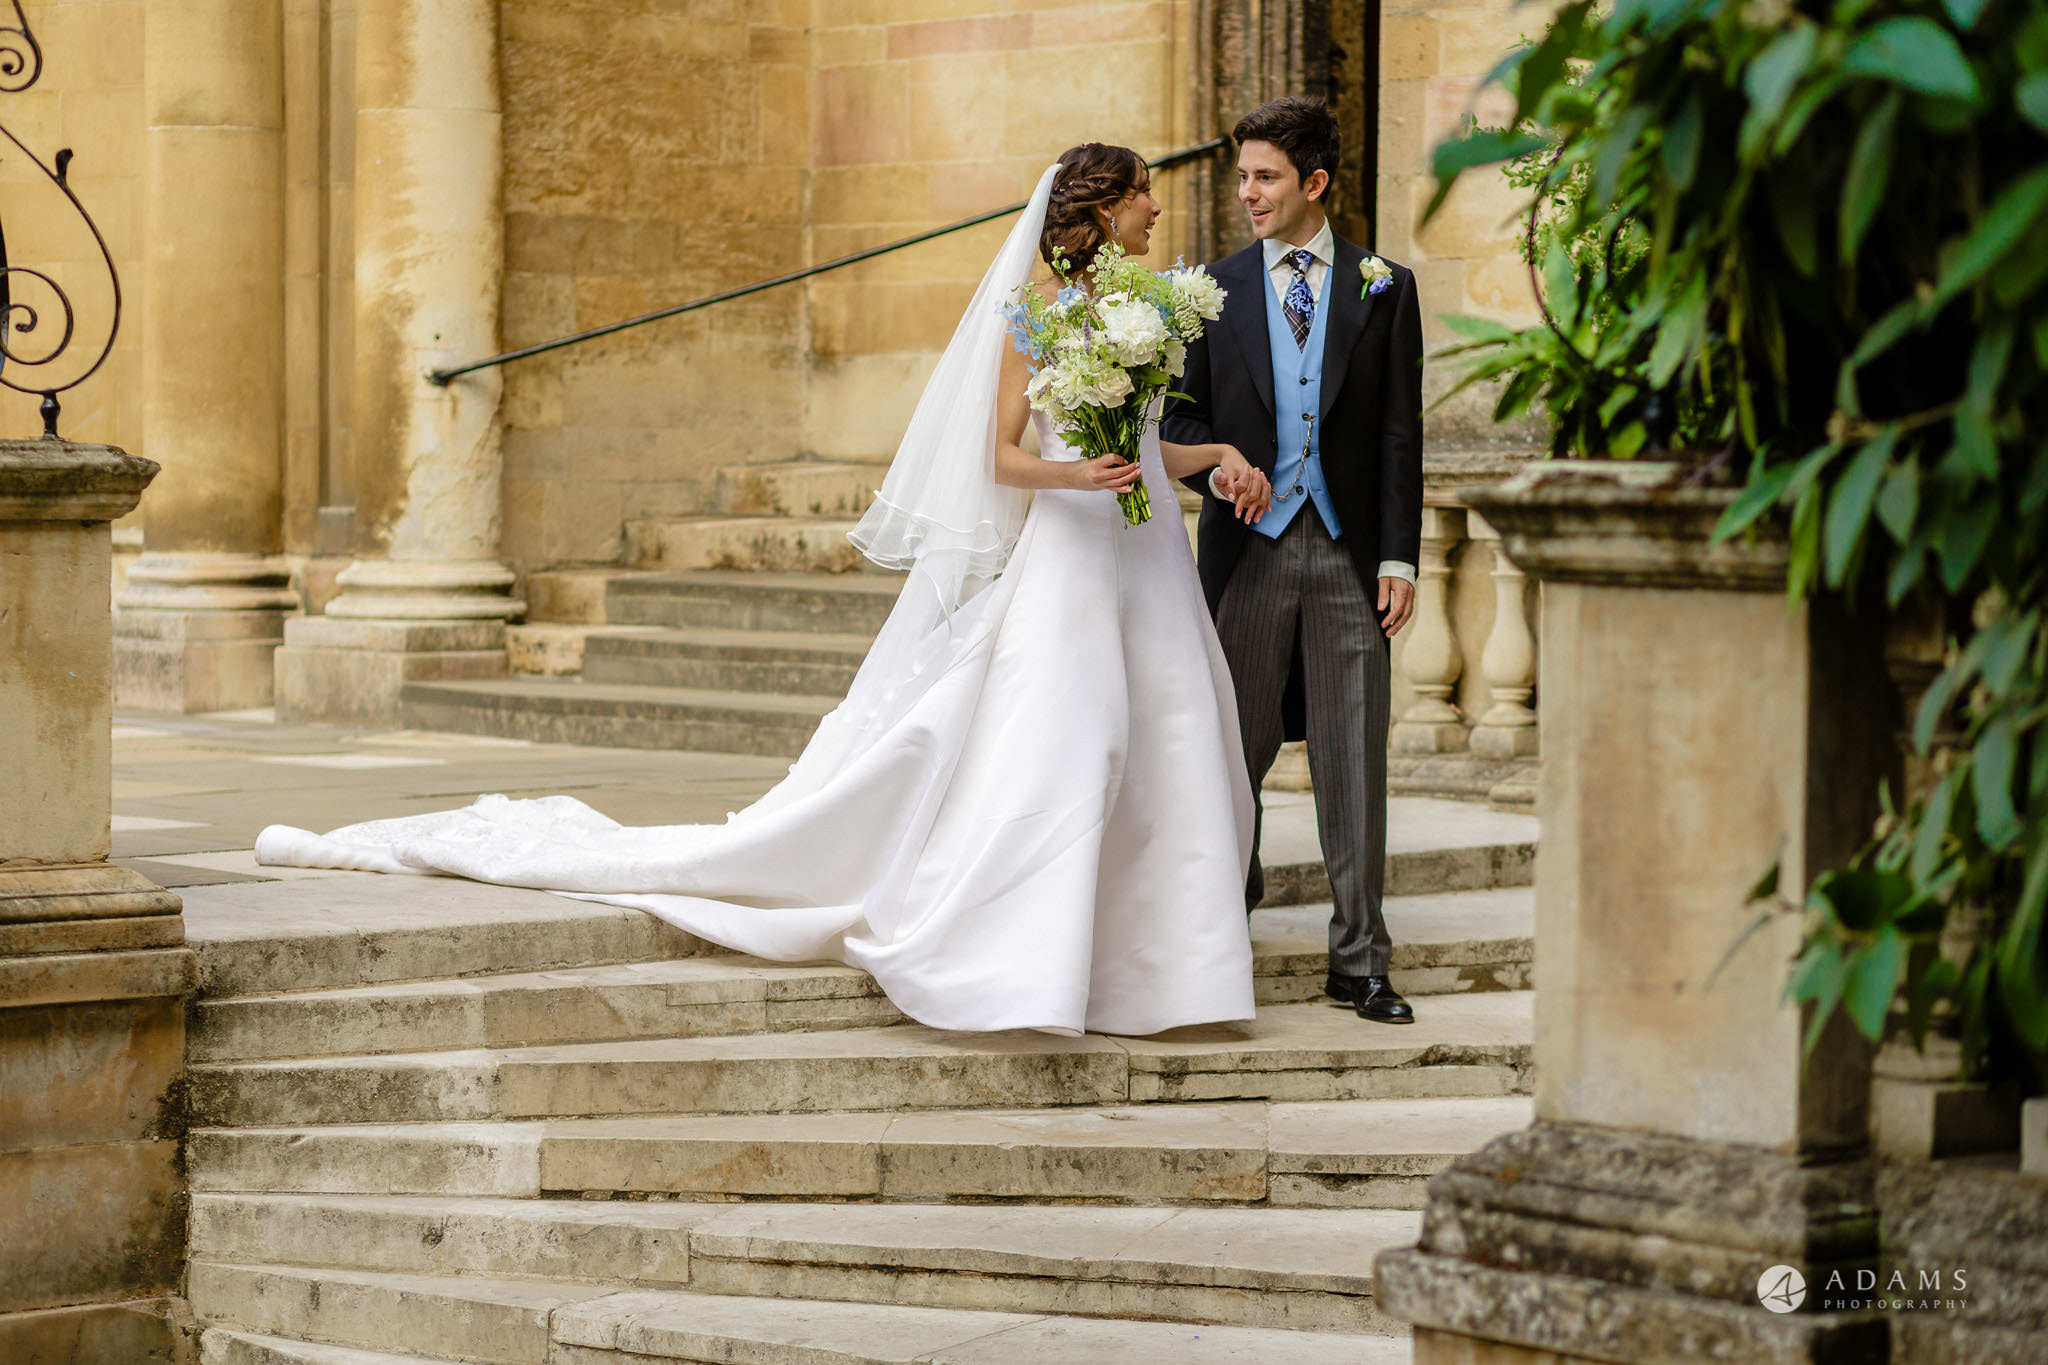 Trinity College Cambridge wedding married couple walk down the stairs